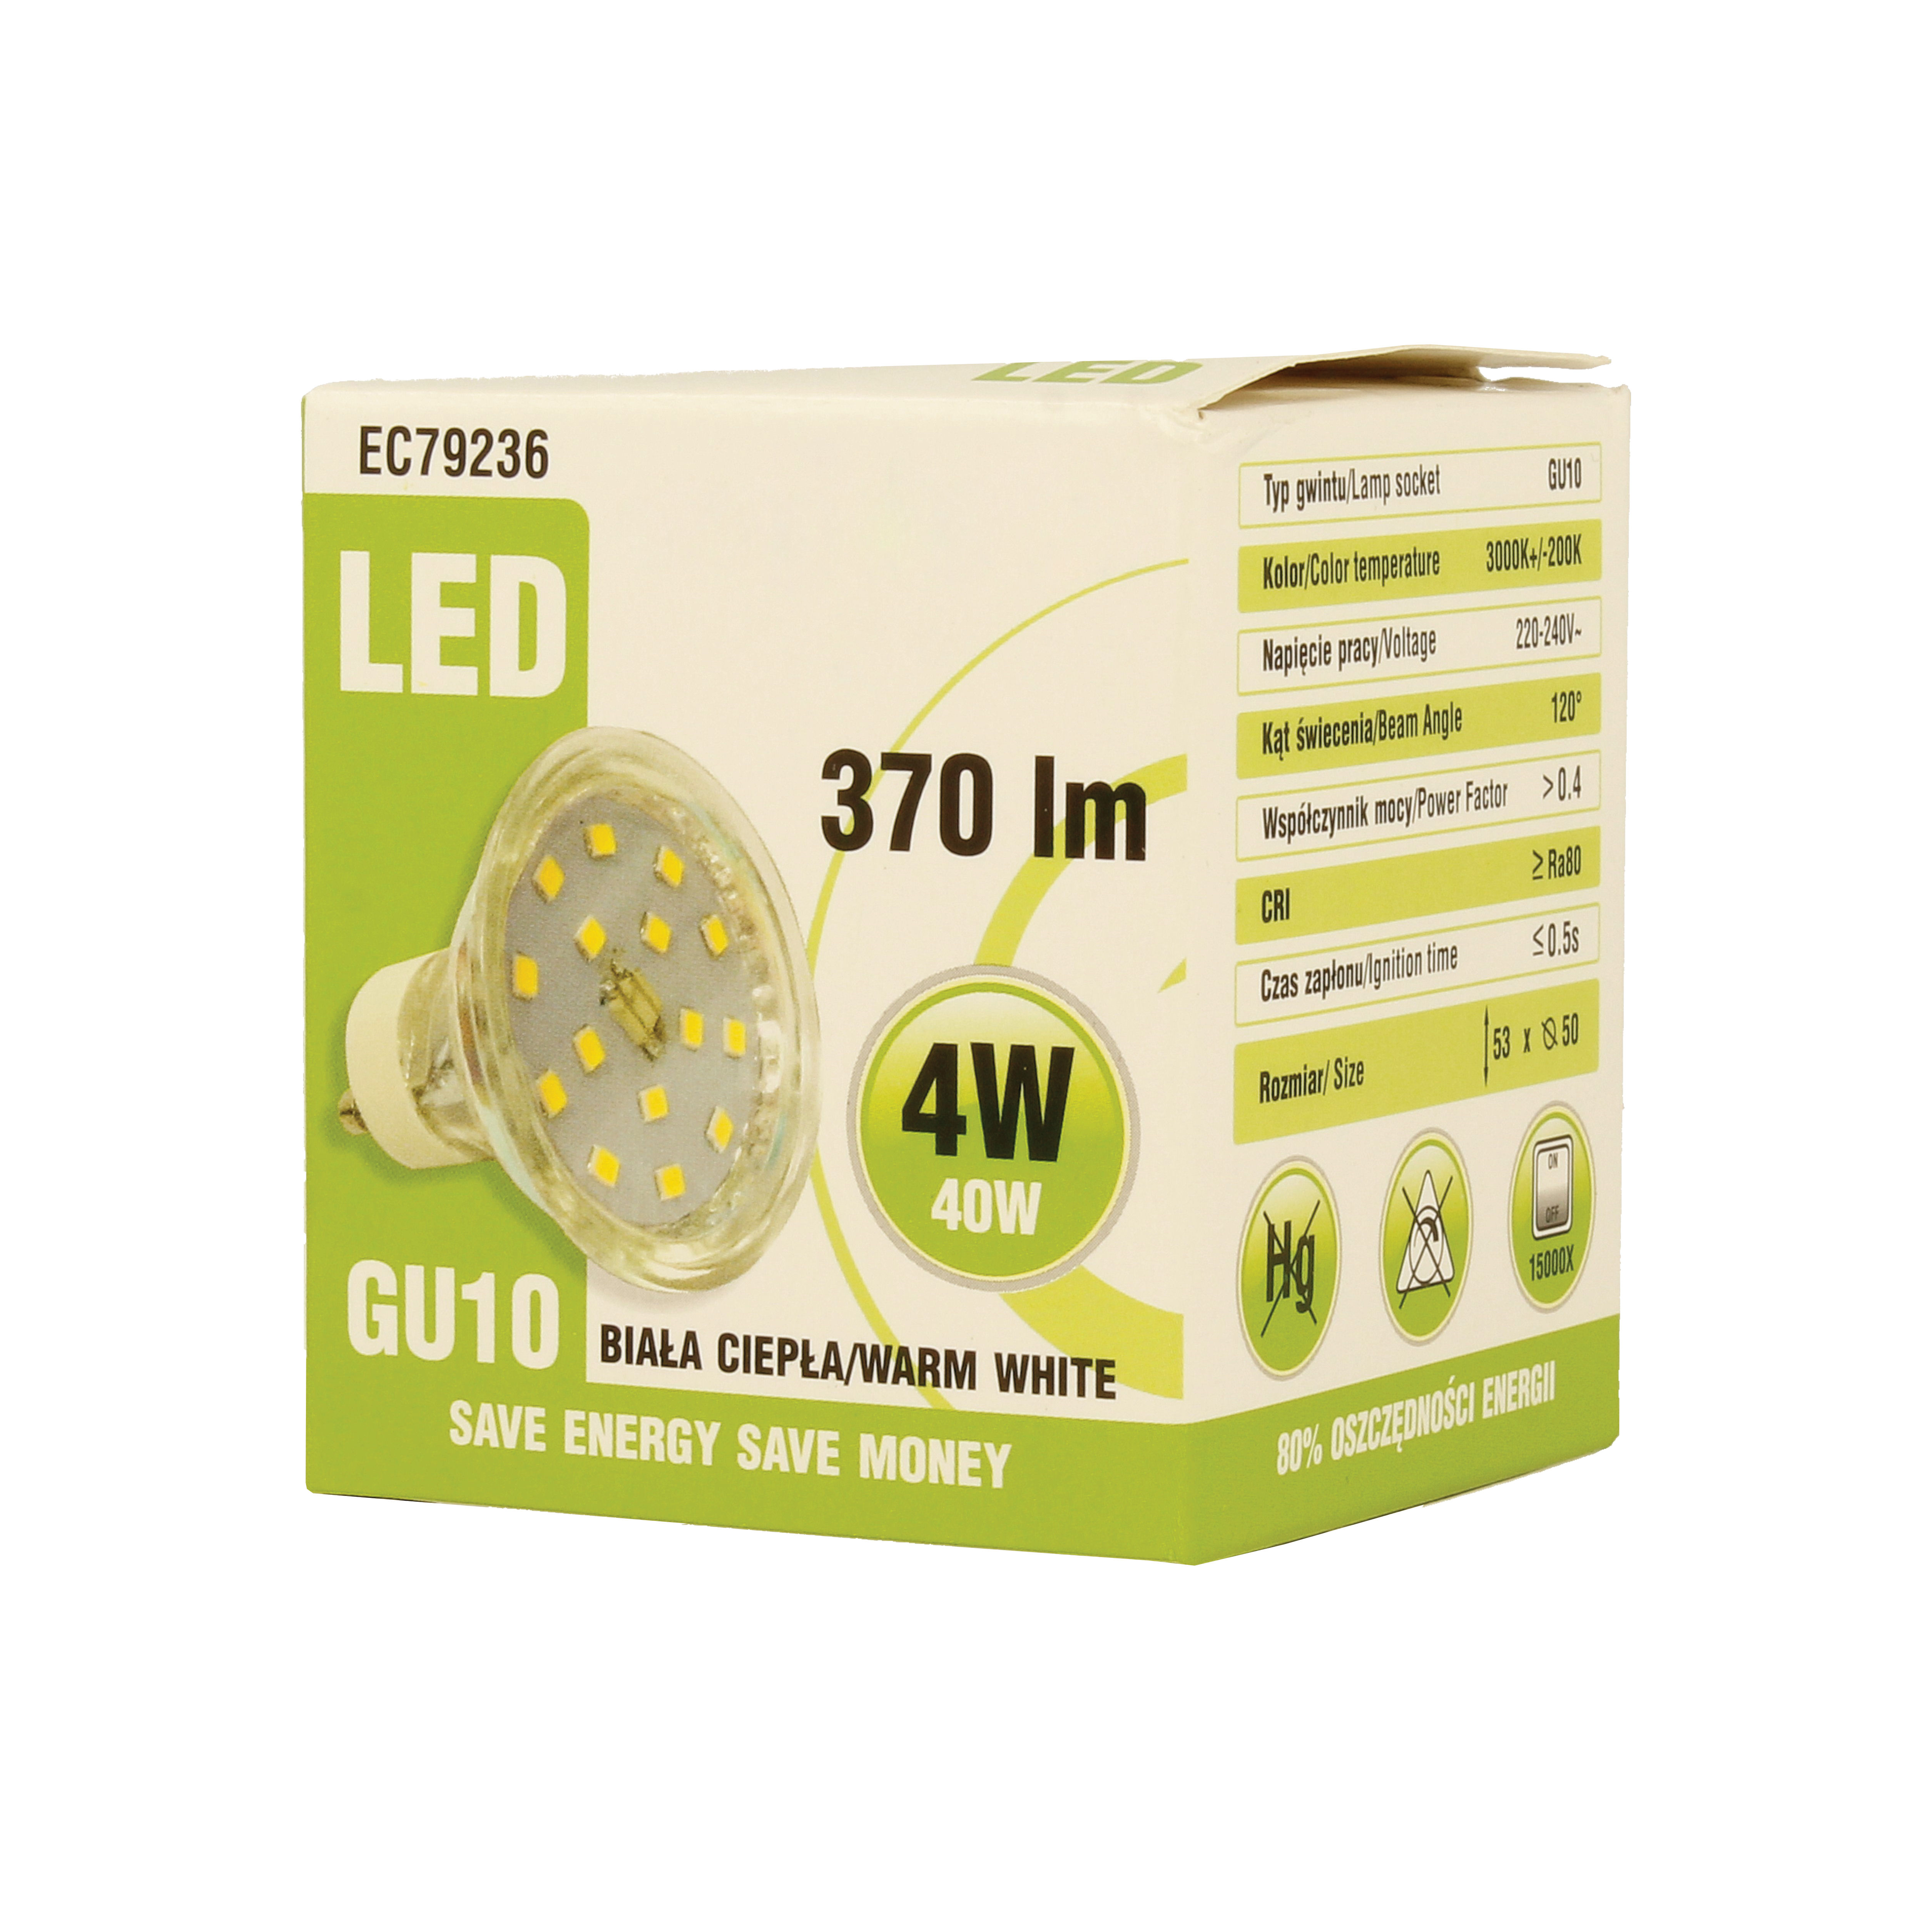 Ecolight LED GU10 Bulb 4W Warm White 370 Lumen EC79236